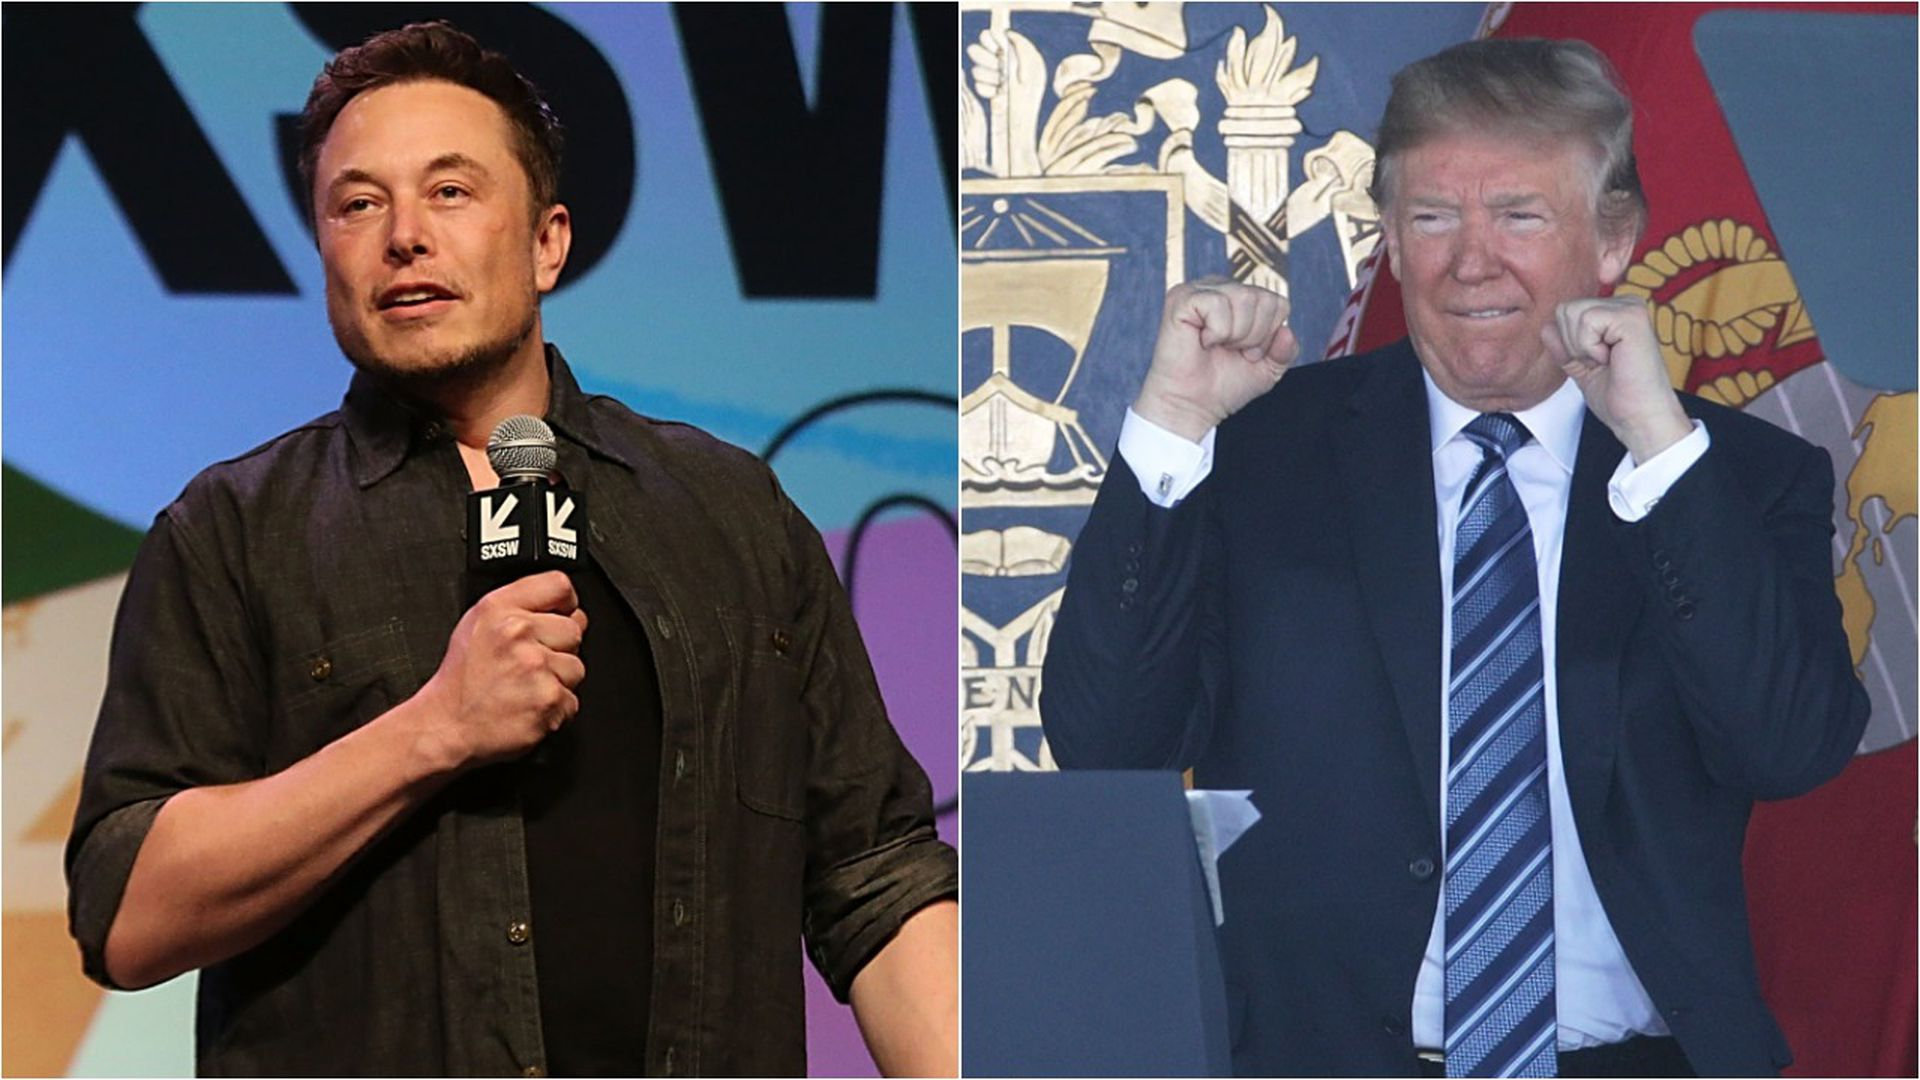 Donald Trump and Elon Musk.